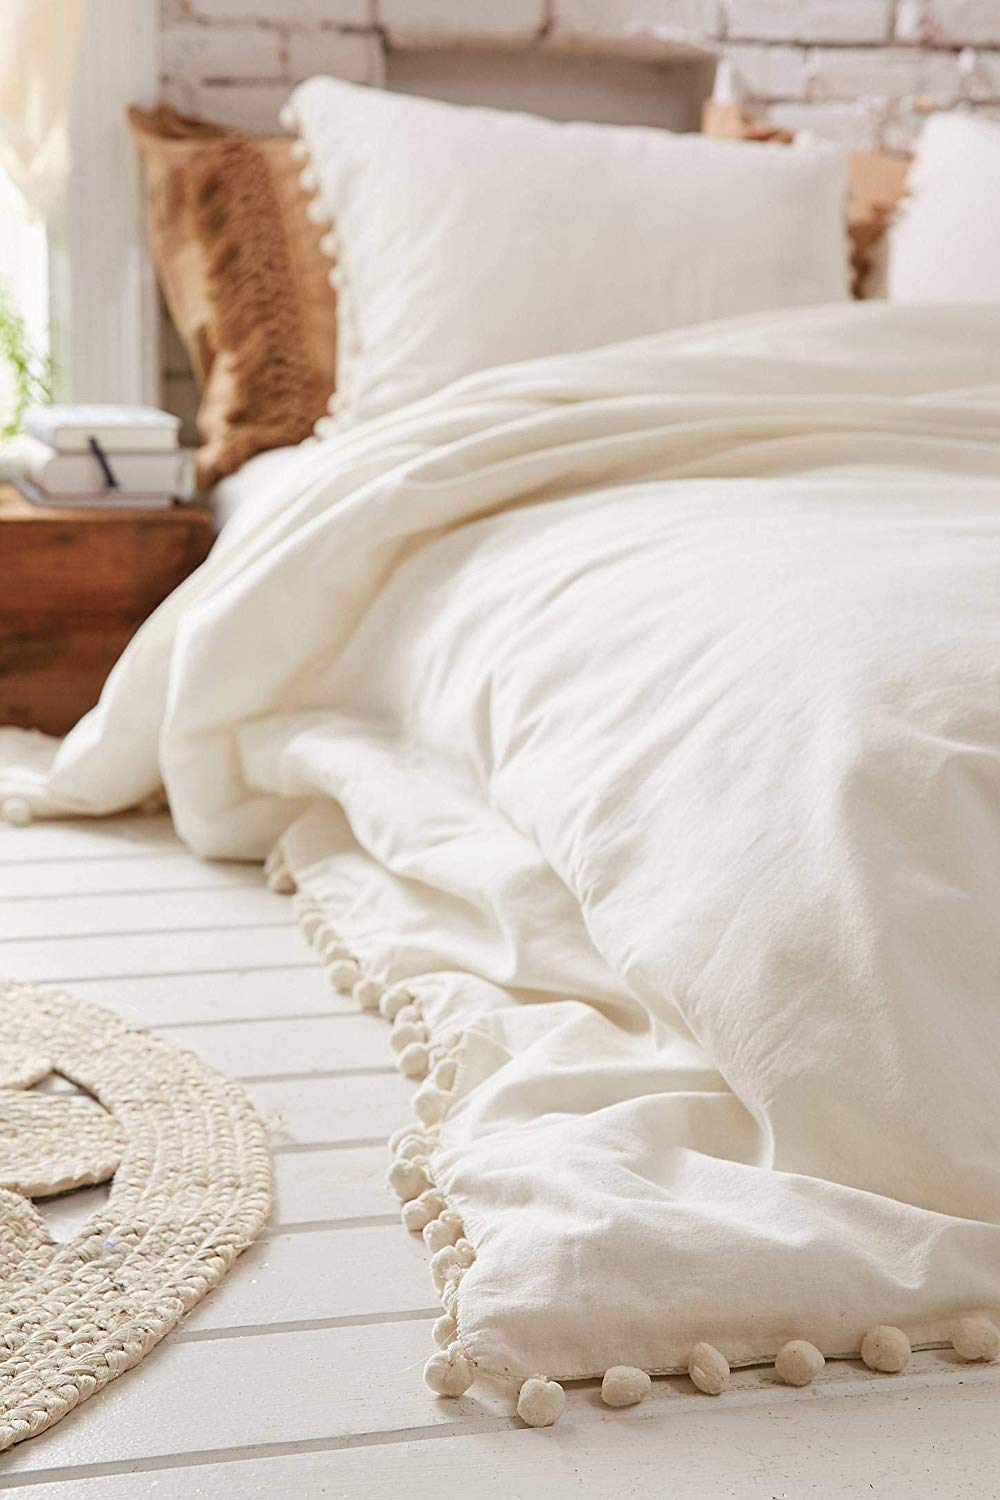 White Pom Pom Duvet Cover Fringed Boho comforters Cotton Cover Twin, 68inx90in